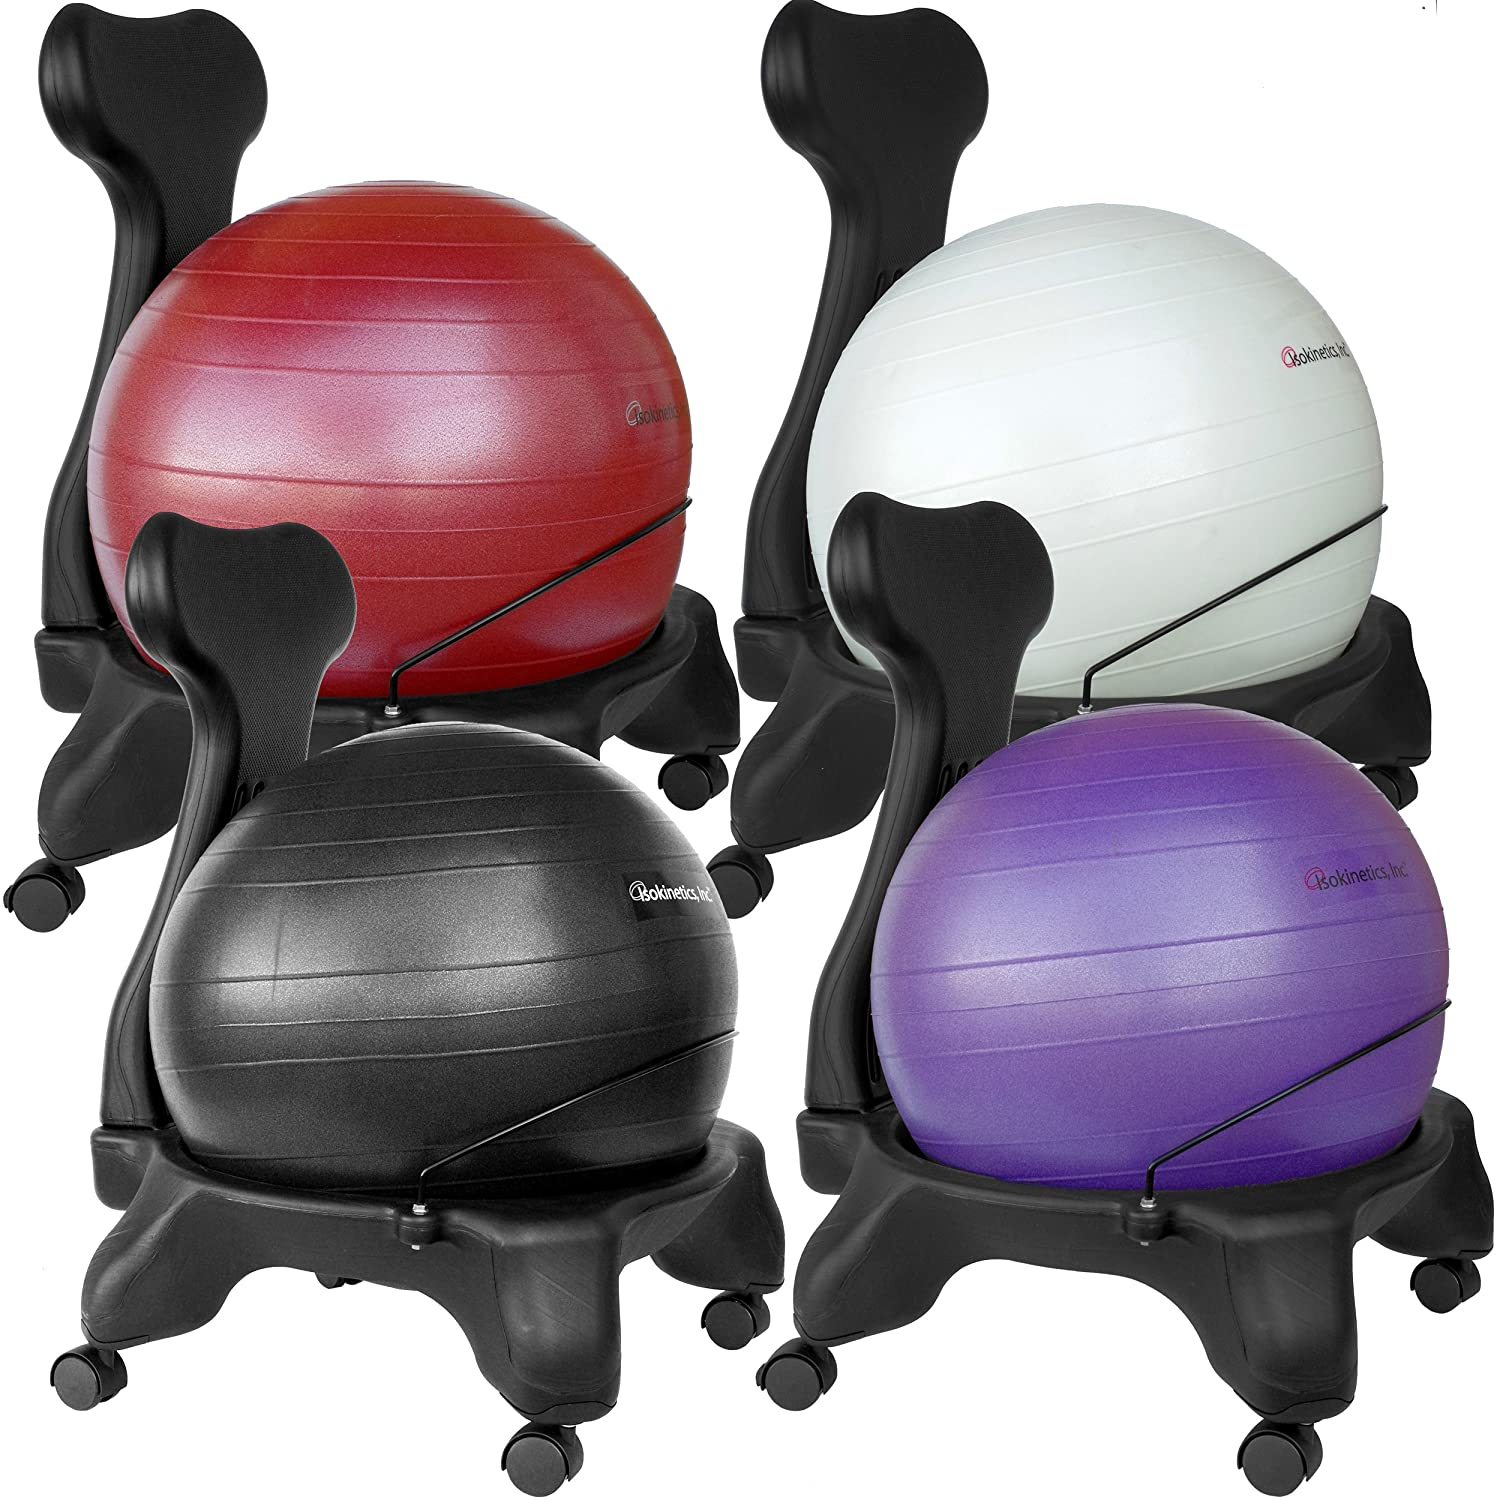 exercise ball office chair. Black Bedroom Furniture Sets. Home Design Ideas